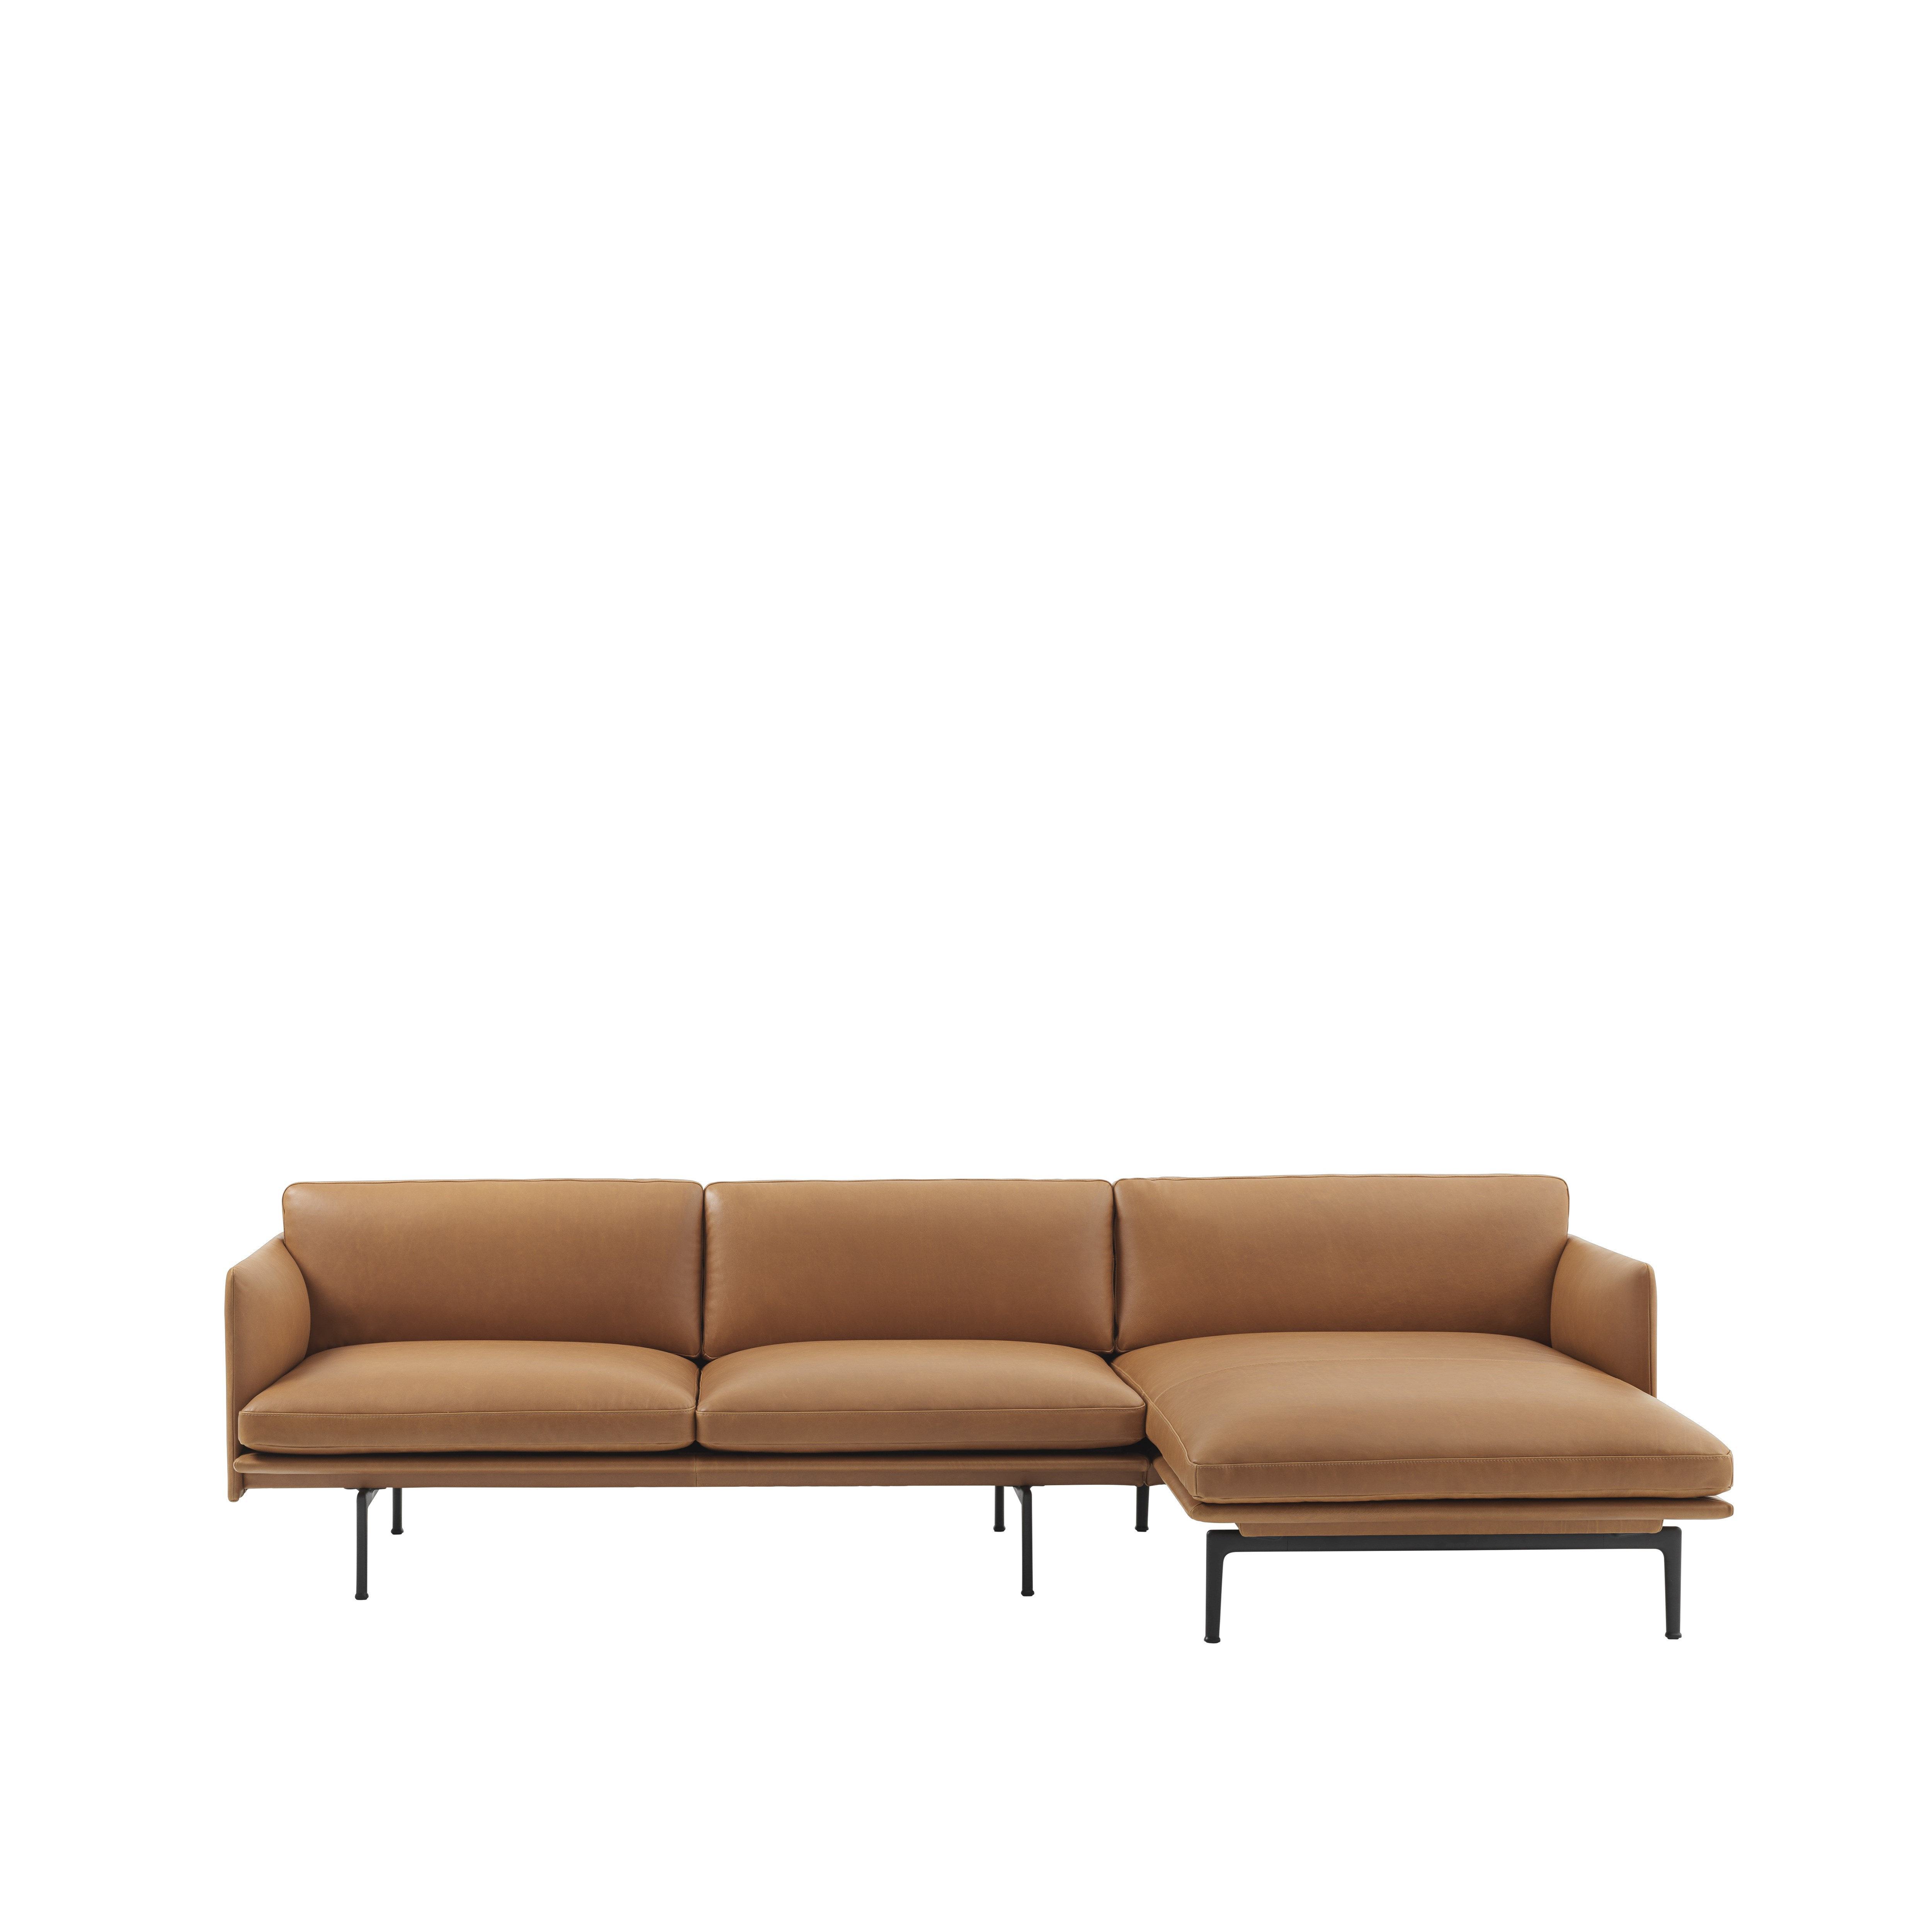 Muuto canap outline sofa chaise longue anderssen voll for Sofa chaise longue